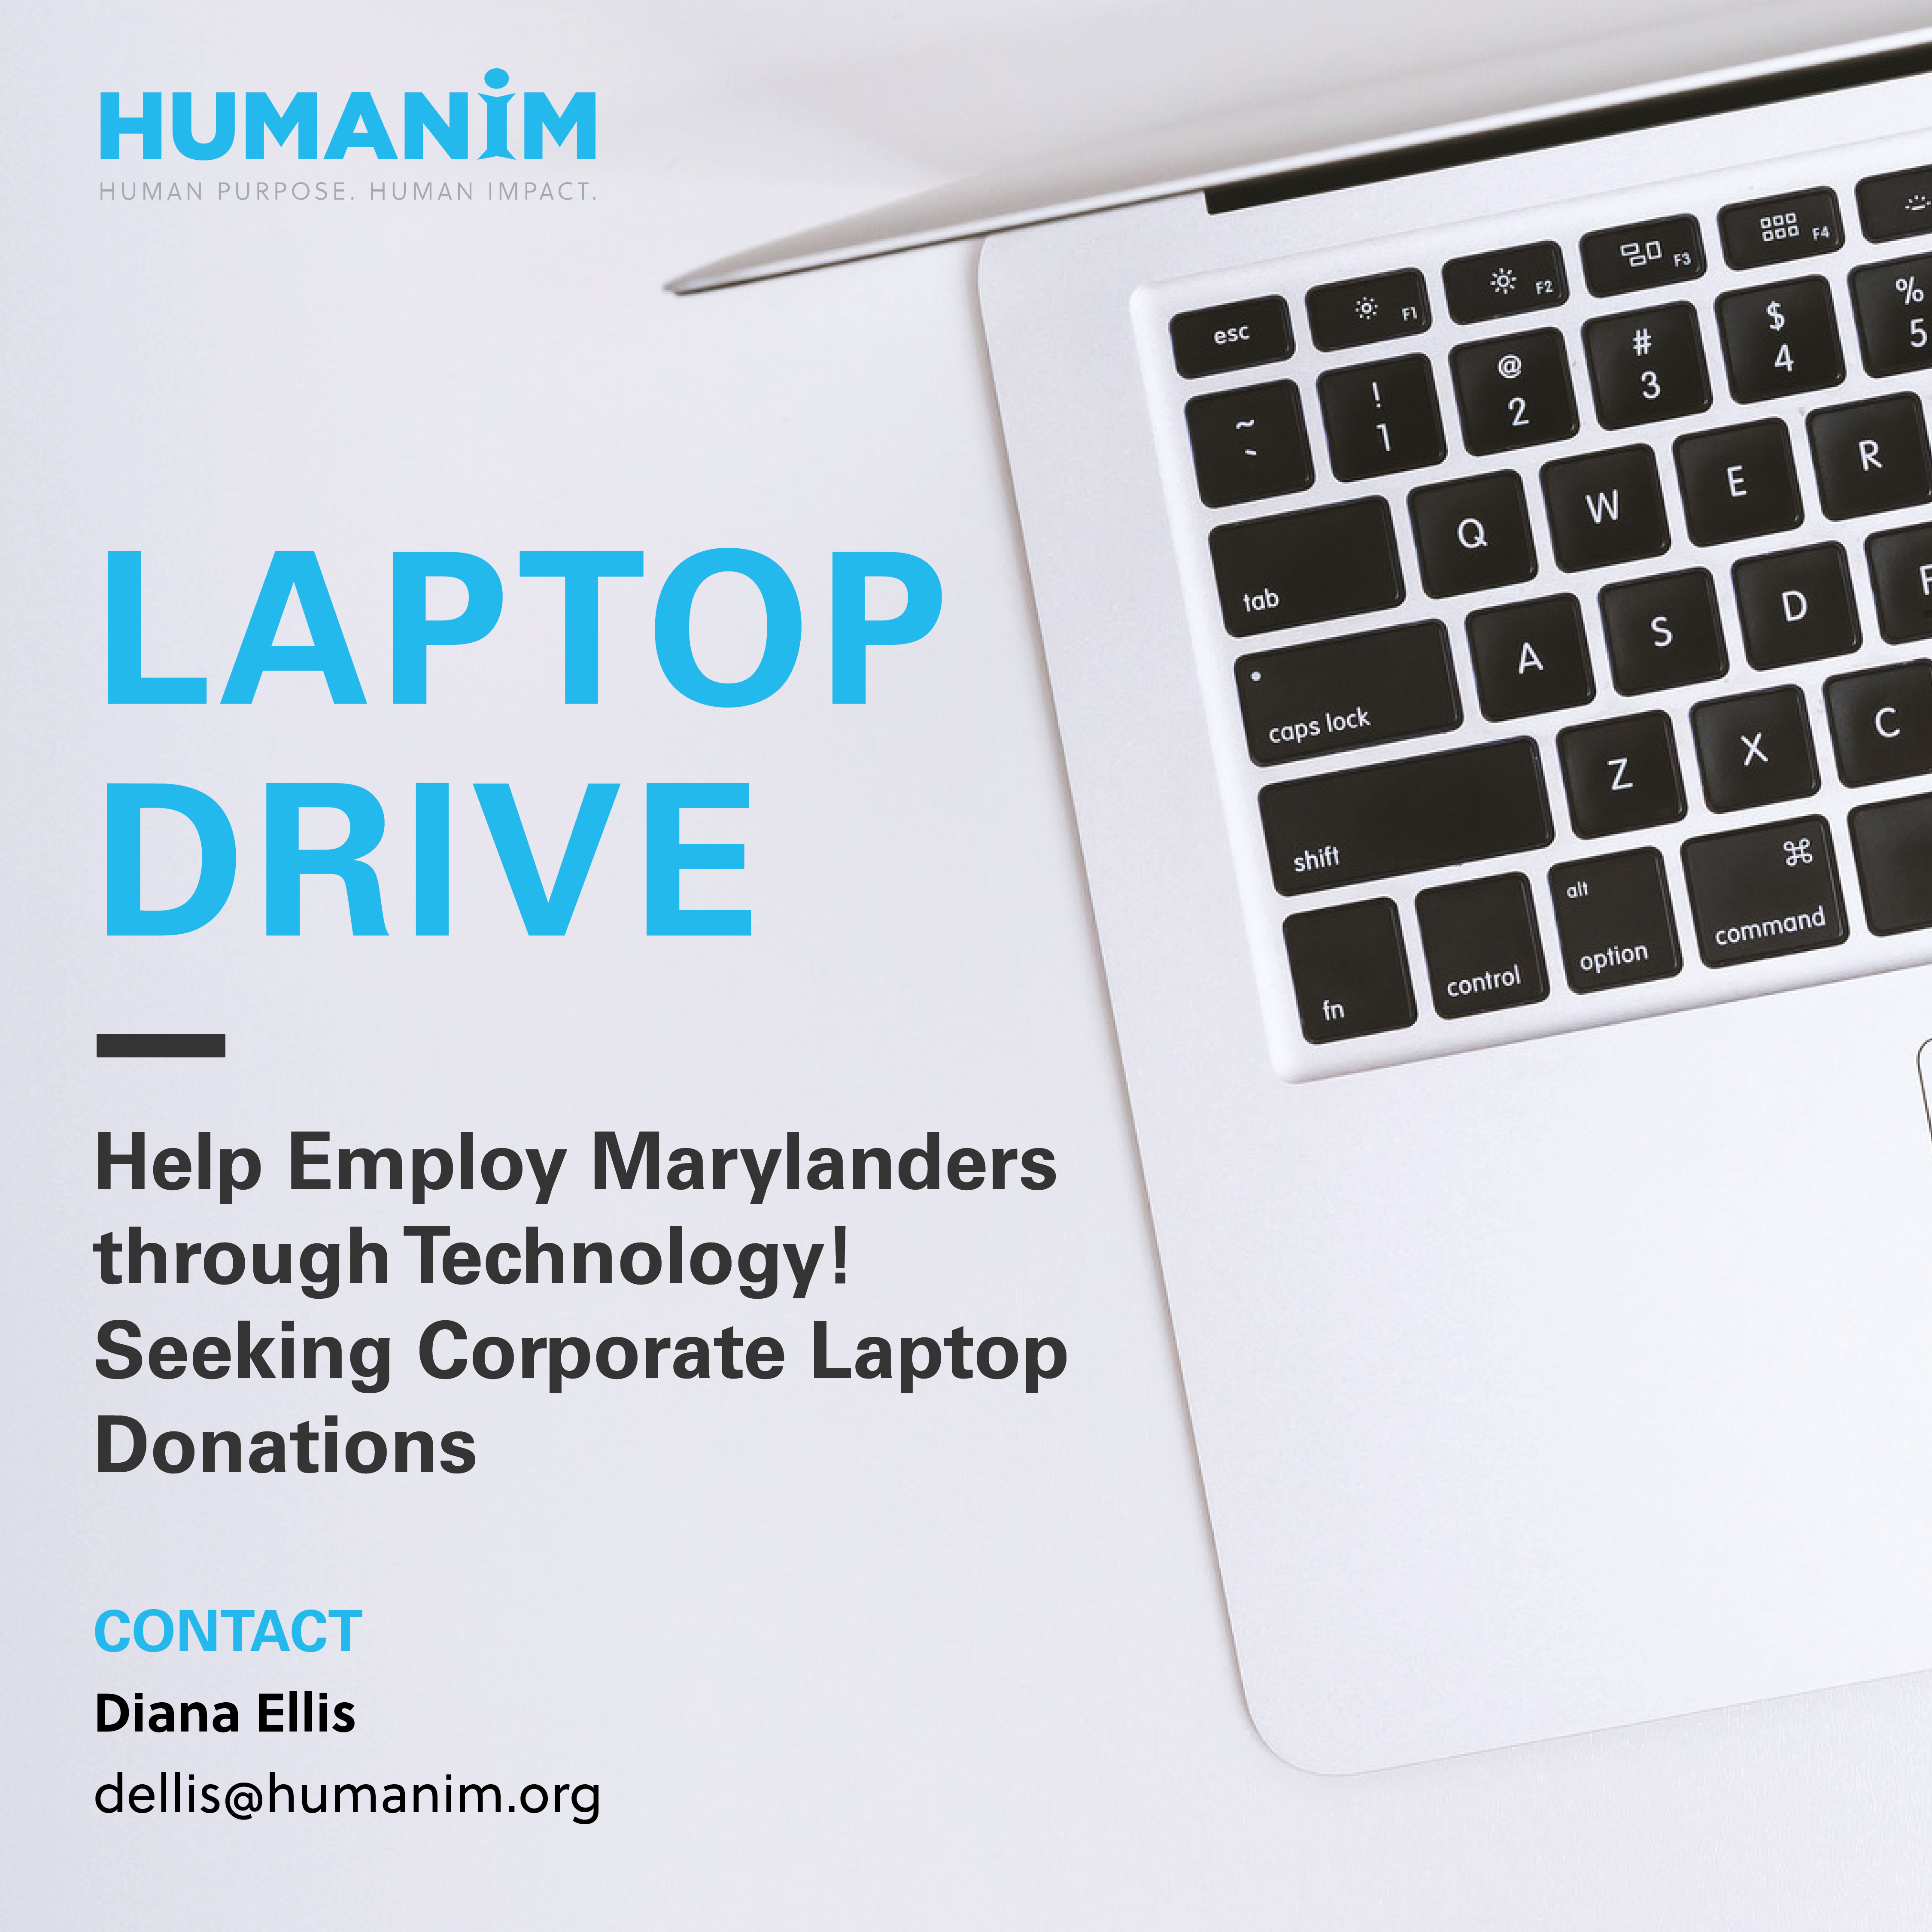 Humanim Laptop Drive